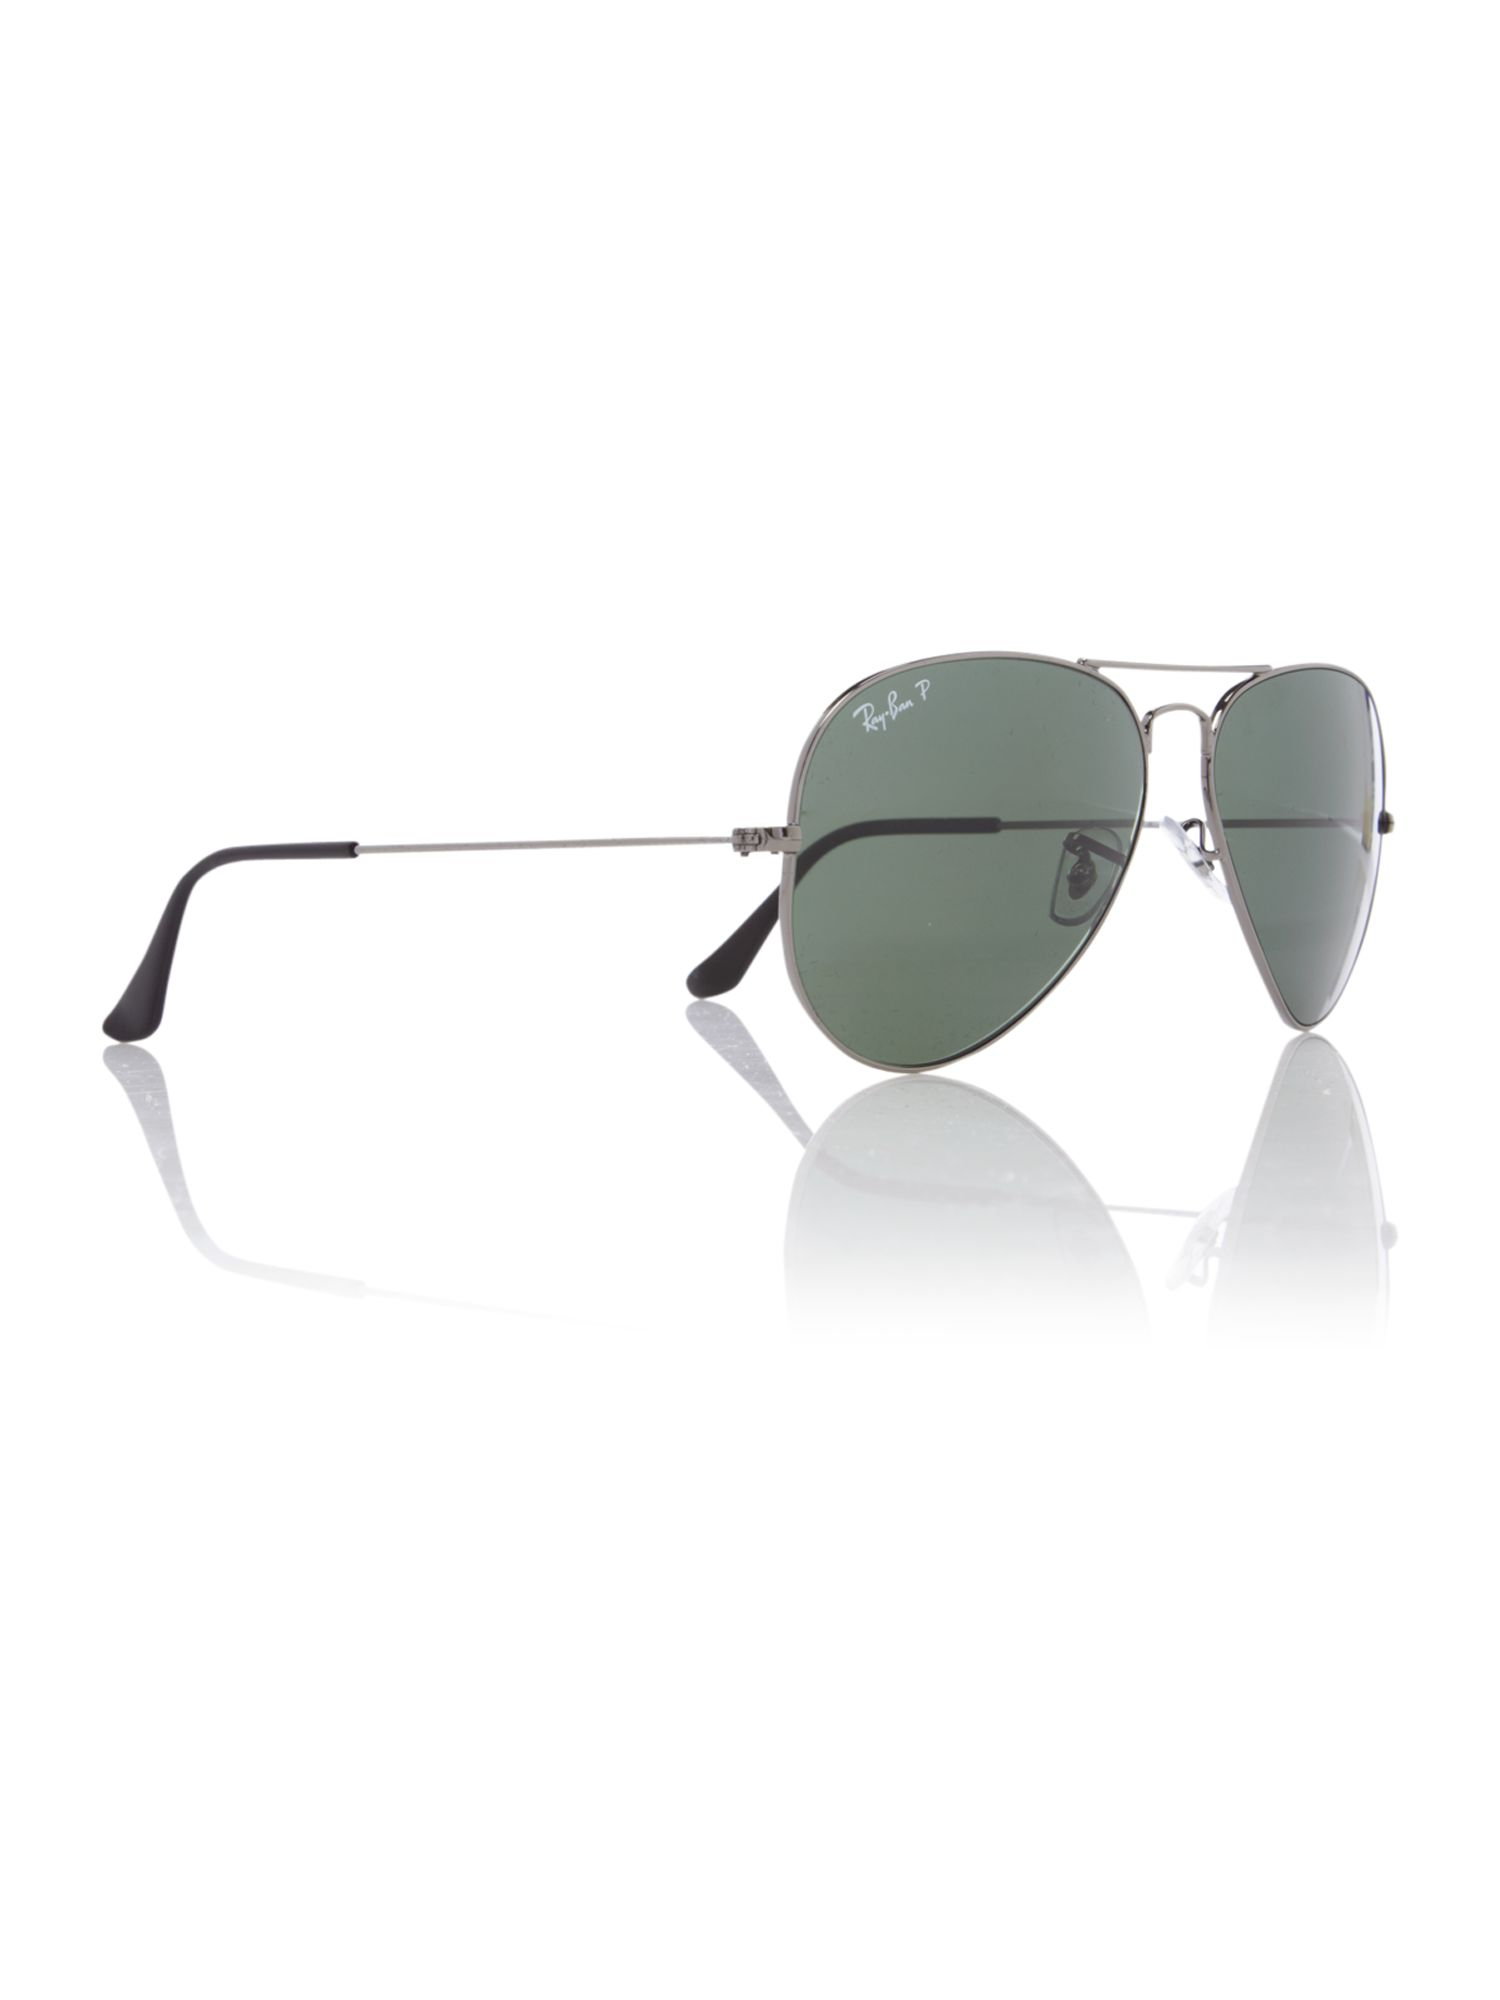 Unisex RB3025 58 Aviator Sunglasses